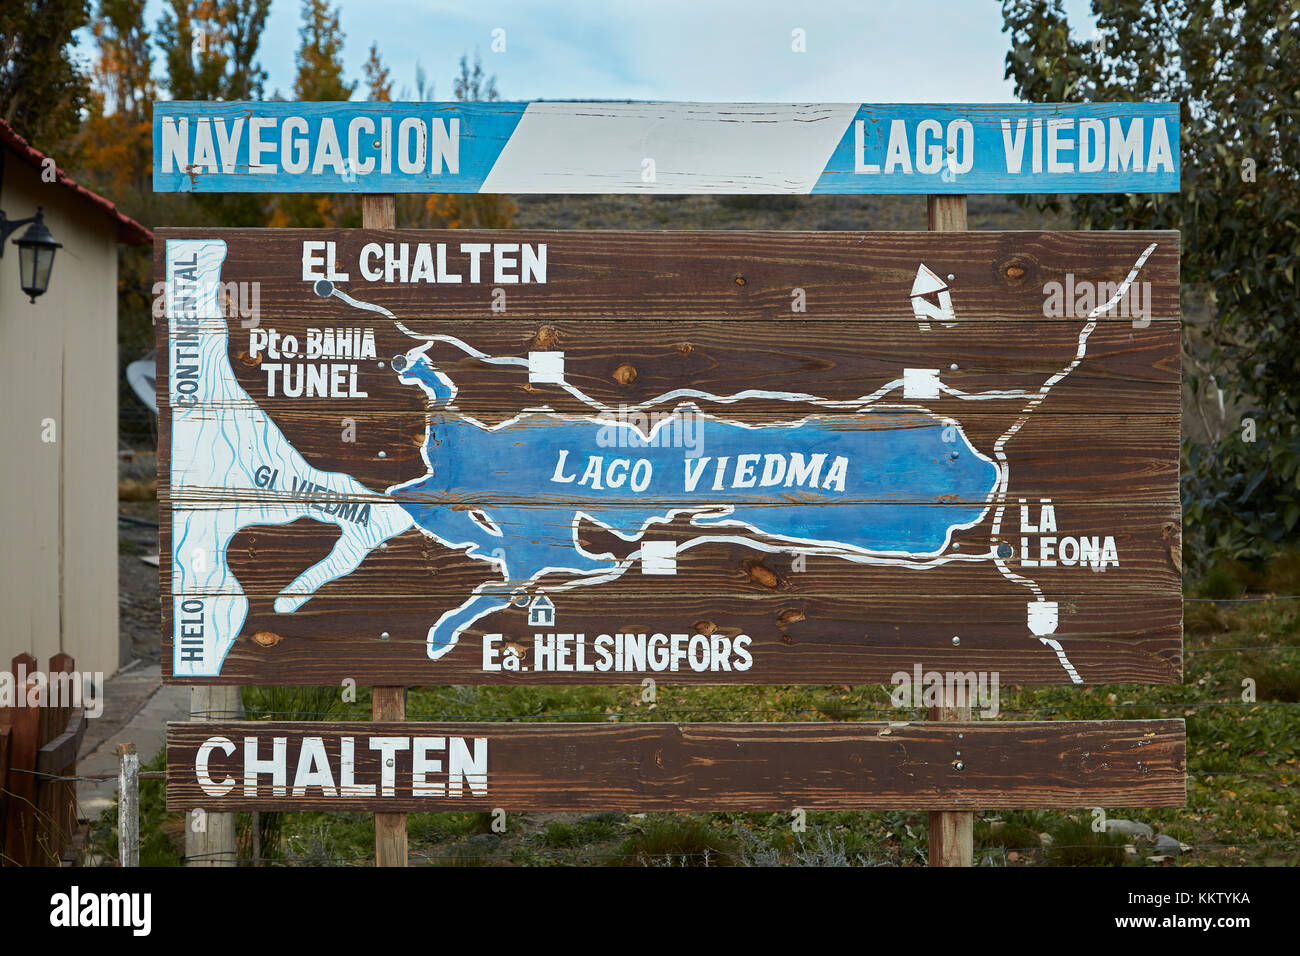 Road map at Hotel La Leona, Route 40, Patagonia, Argentina, South America - Stock Image